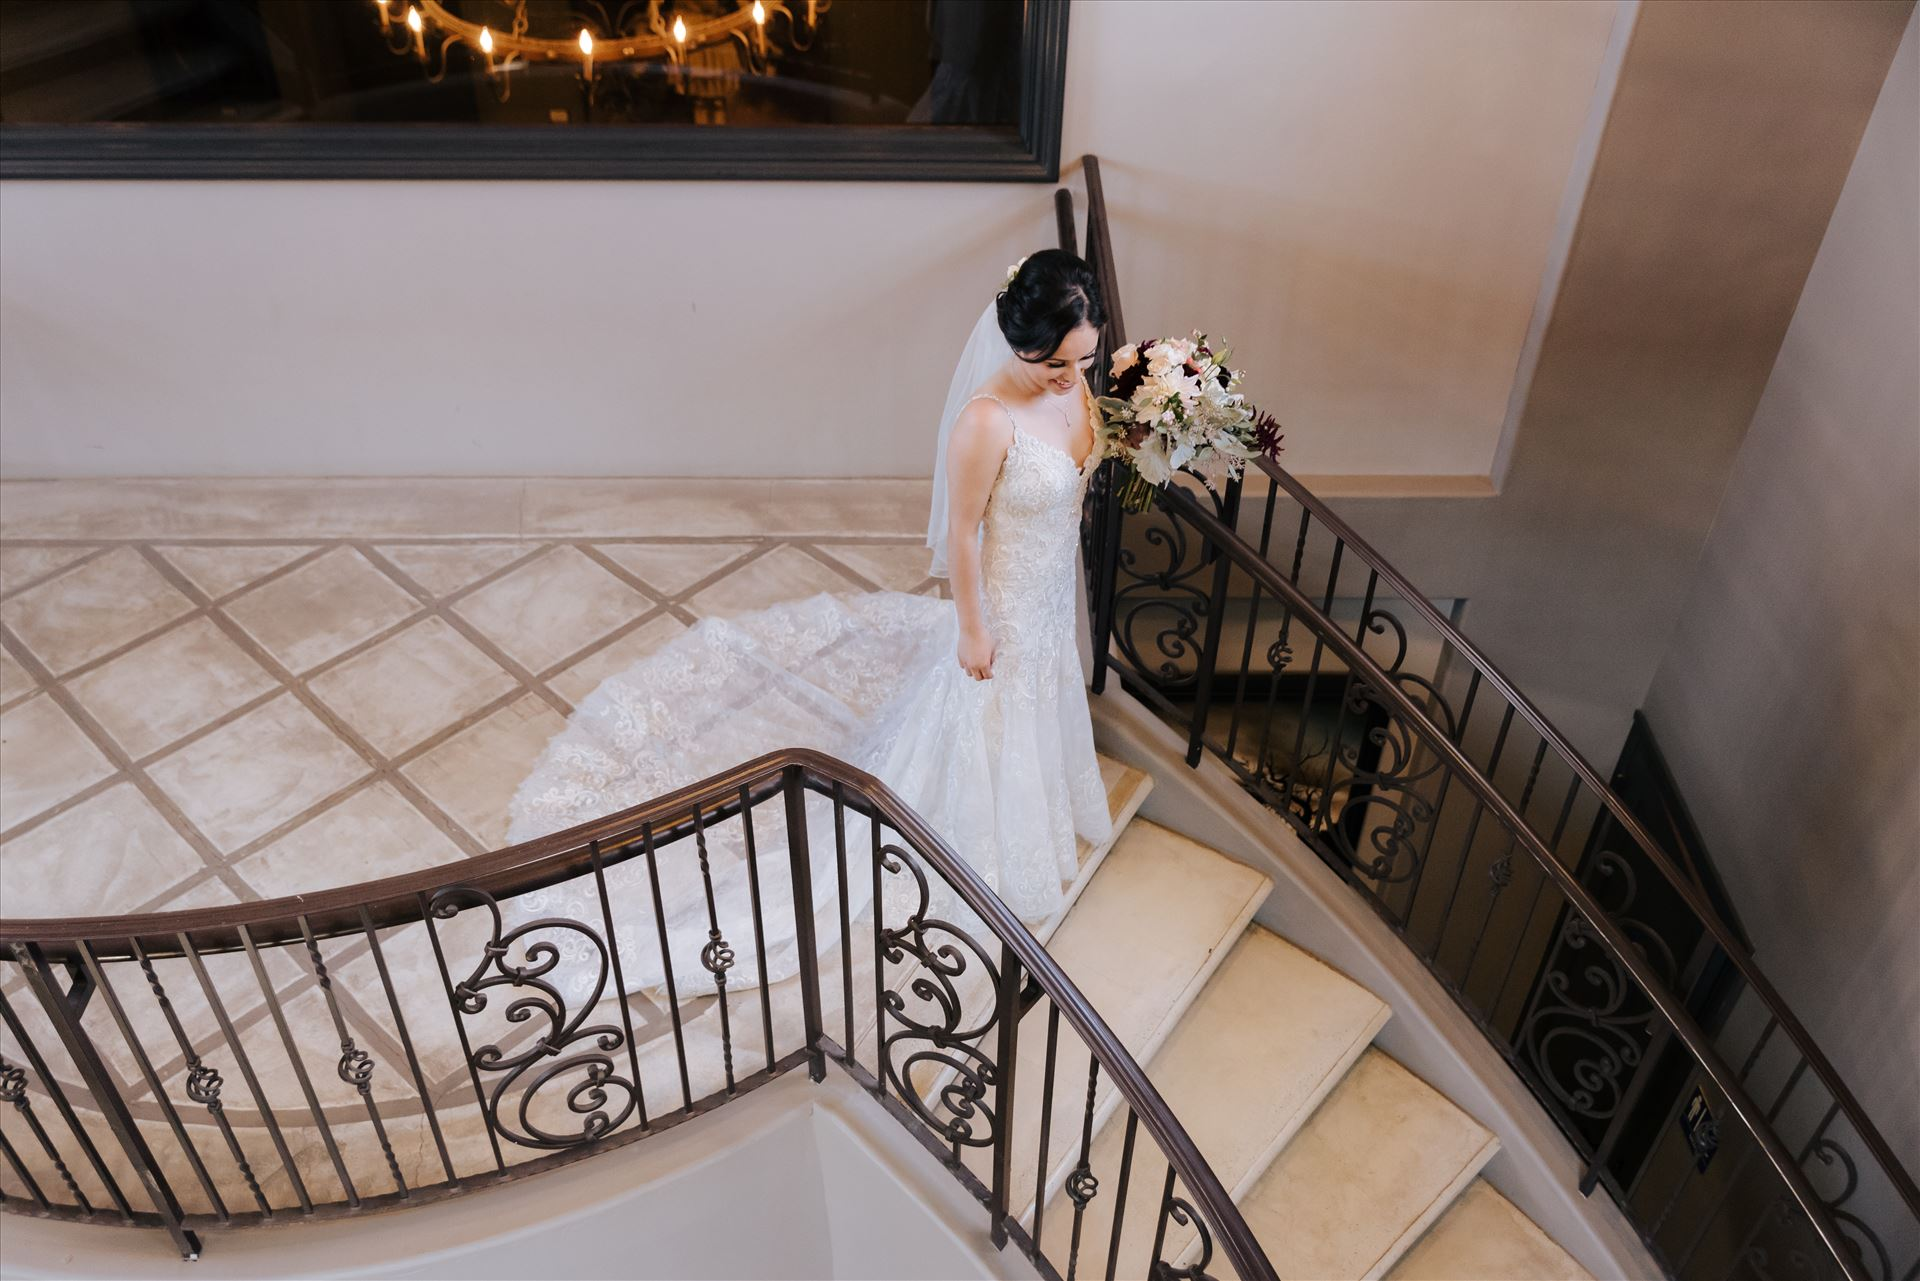 Edith and Kyle 011 - Mirror's Edge Photography captures Edith and Kyle's wedding at the Tooth and Nail Winery in Paso Robles California. Bride getting ready for the First Look on the stairs by Sarah Williams